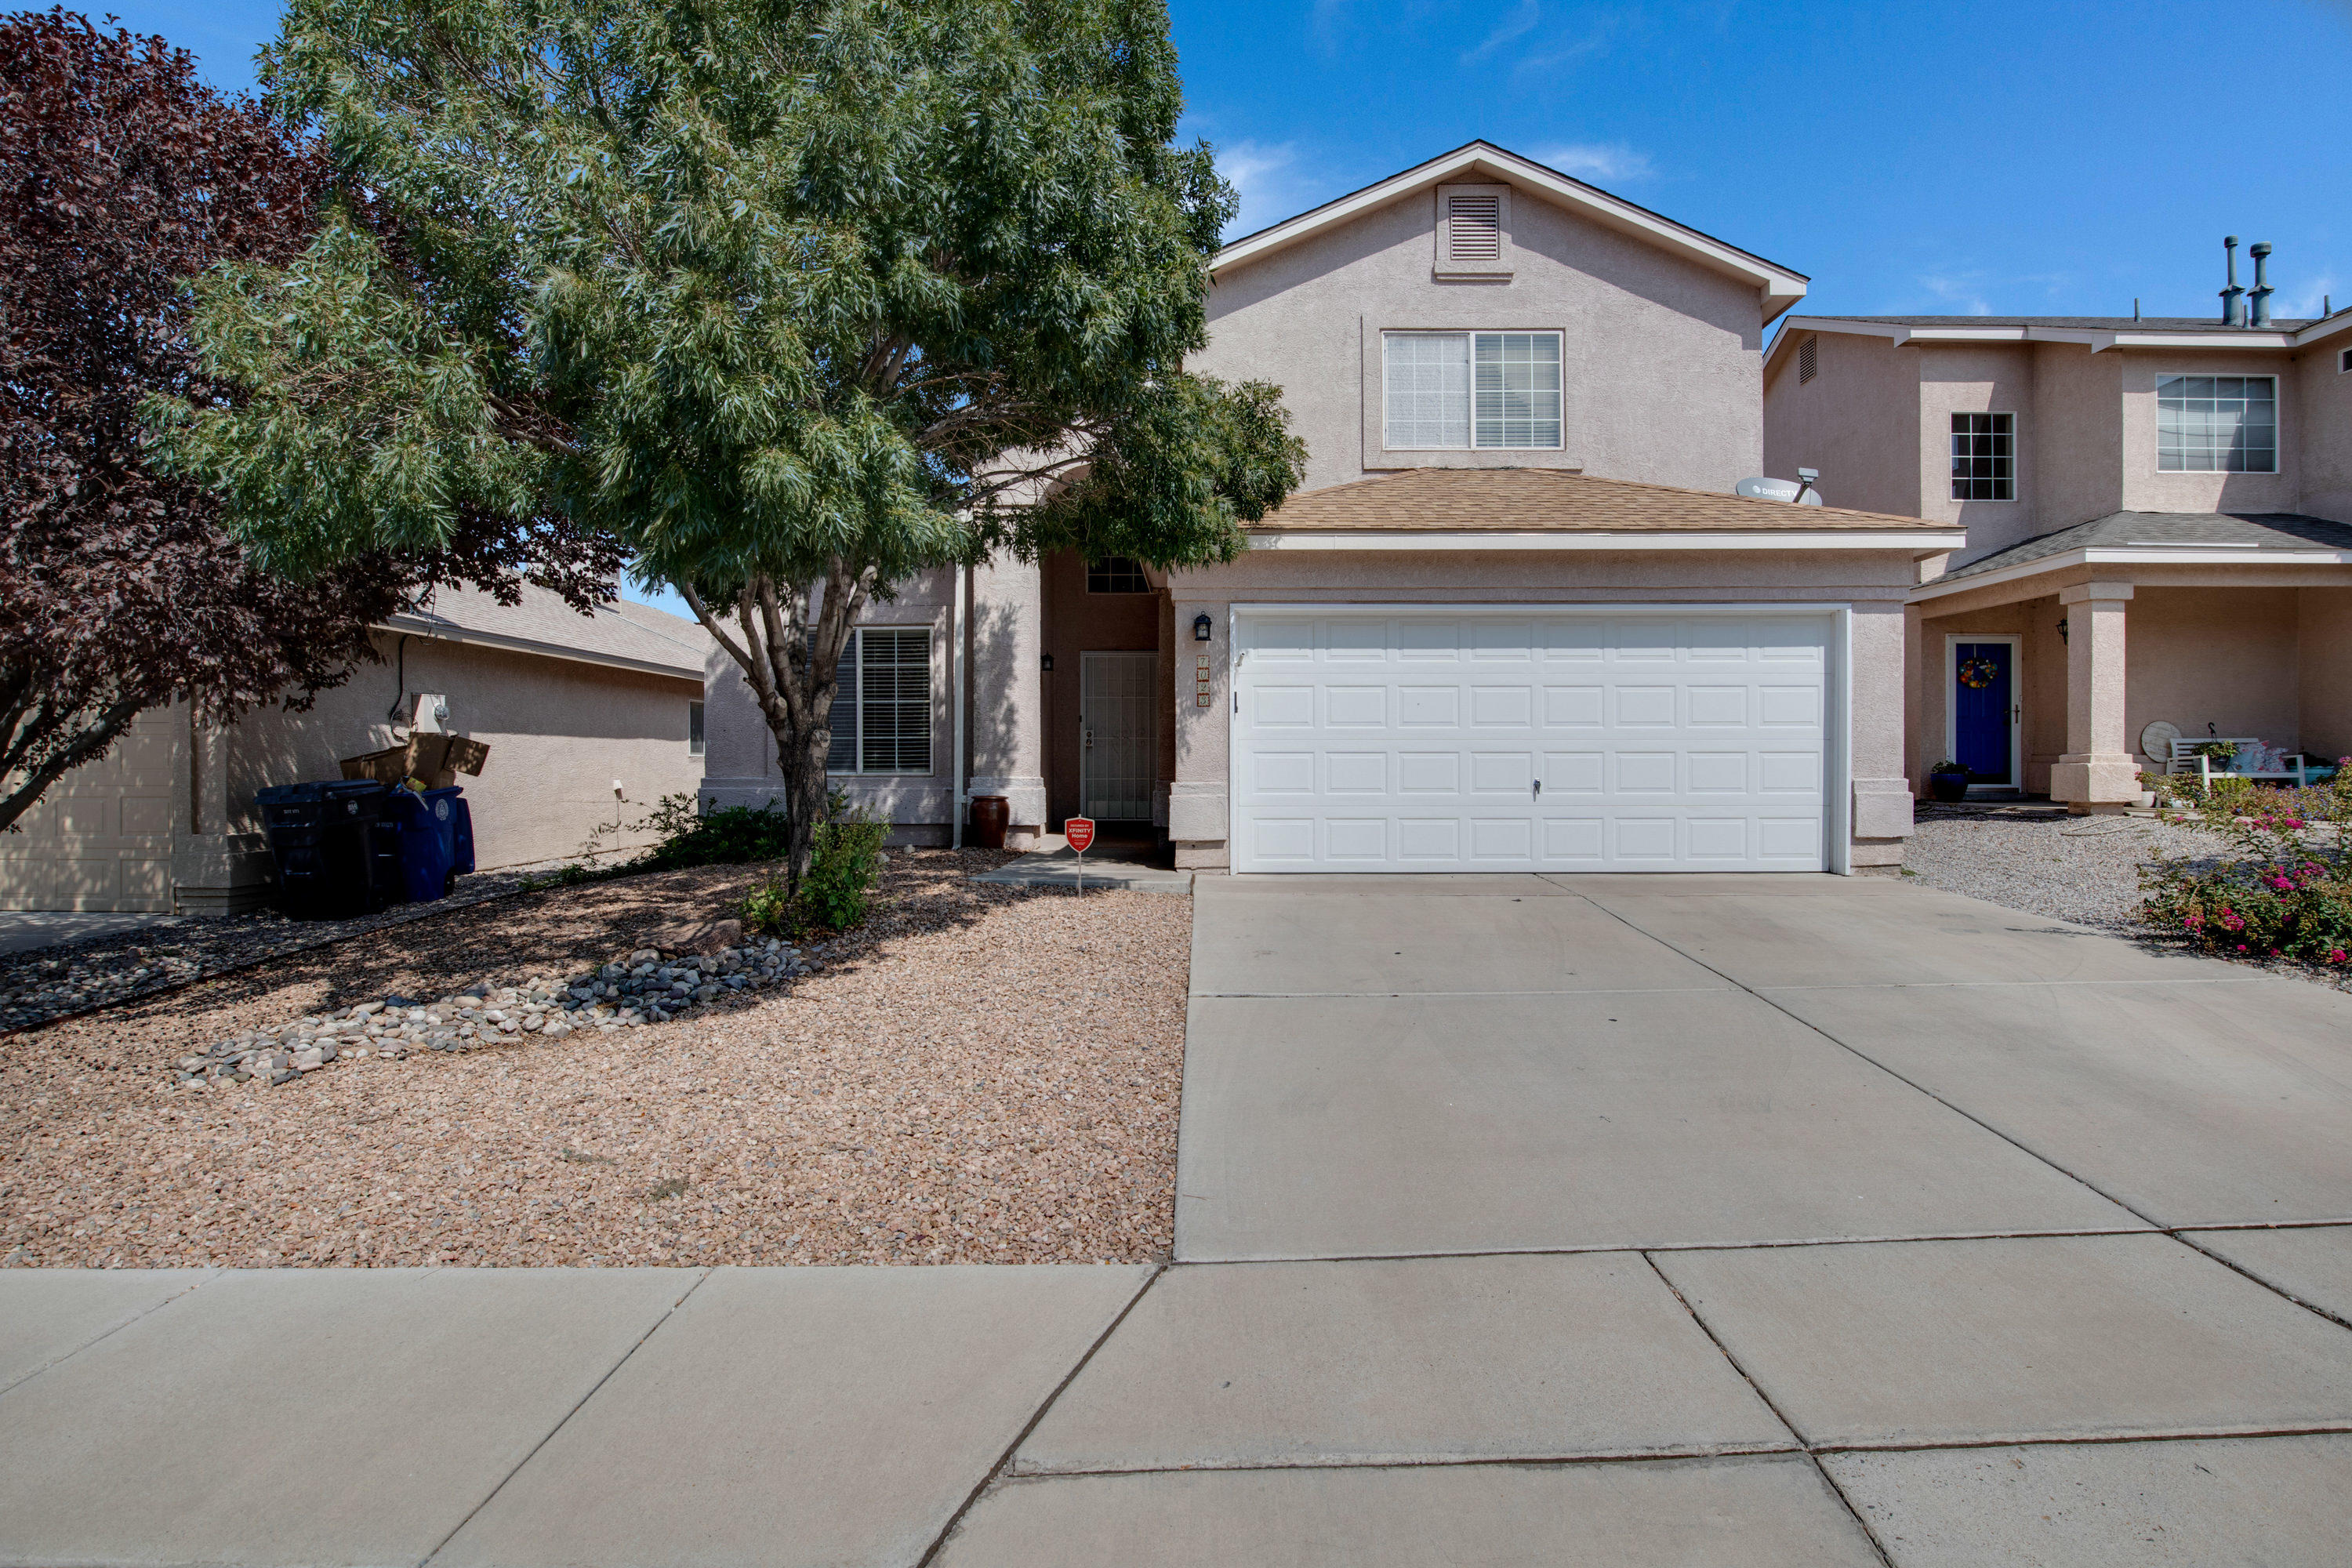 Fantastic home with many updates in La Cueva School District. Current owner has installed new roof, furnace, refrigerated air, kitchen appliances, new ceramic tile flooring, light fixtures, granite countertops and more!! Downstairs master bedroom with jetted tub. The upstairs loft area makes a wonderful family gathering area. Great location to shopping and amenities.